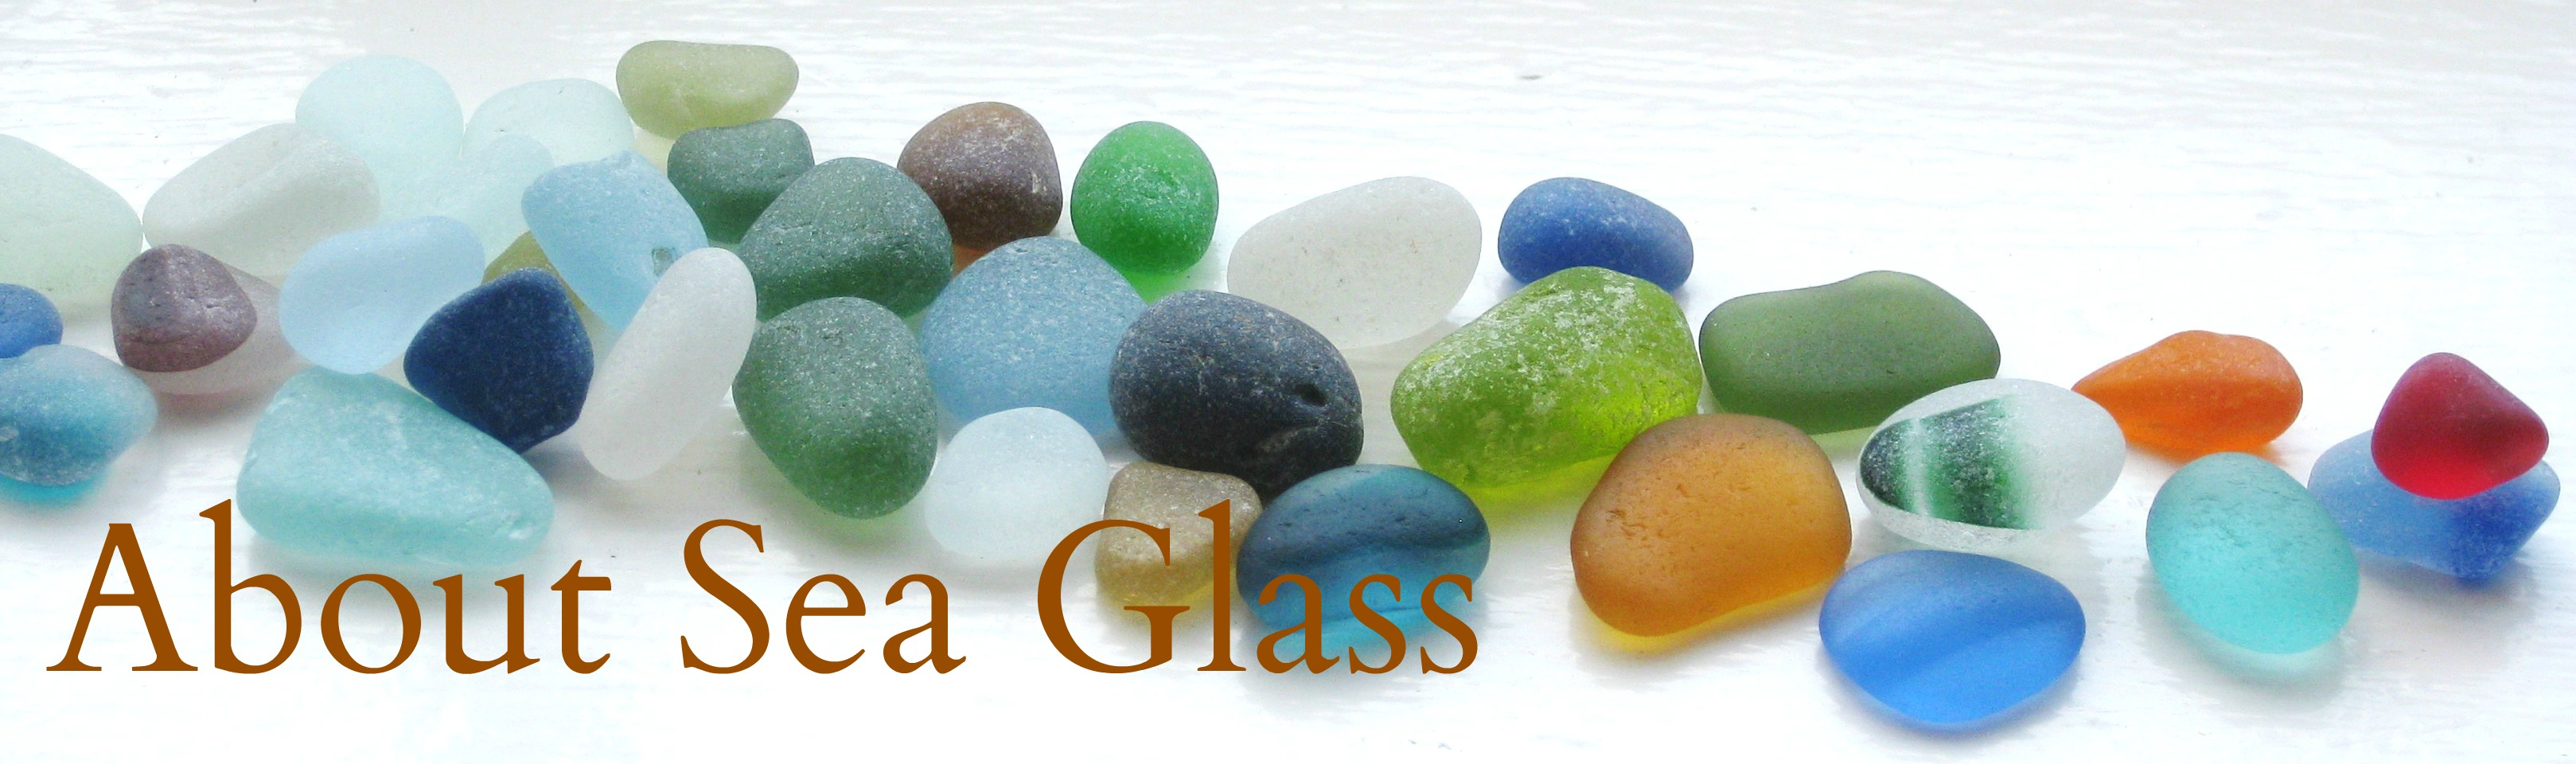 lita-sea-glass-jewelry-about-sea-glass.jpg